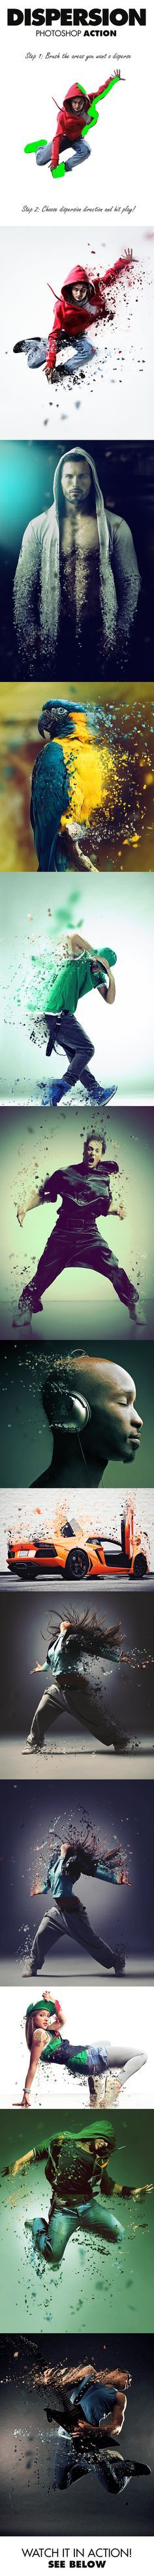 Dispersion Photoshop Action by Brad Goble, via Behance